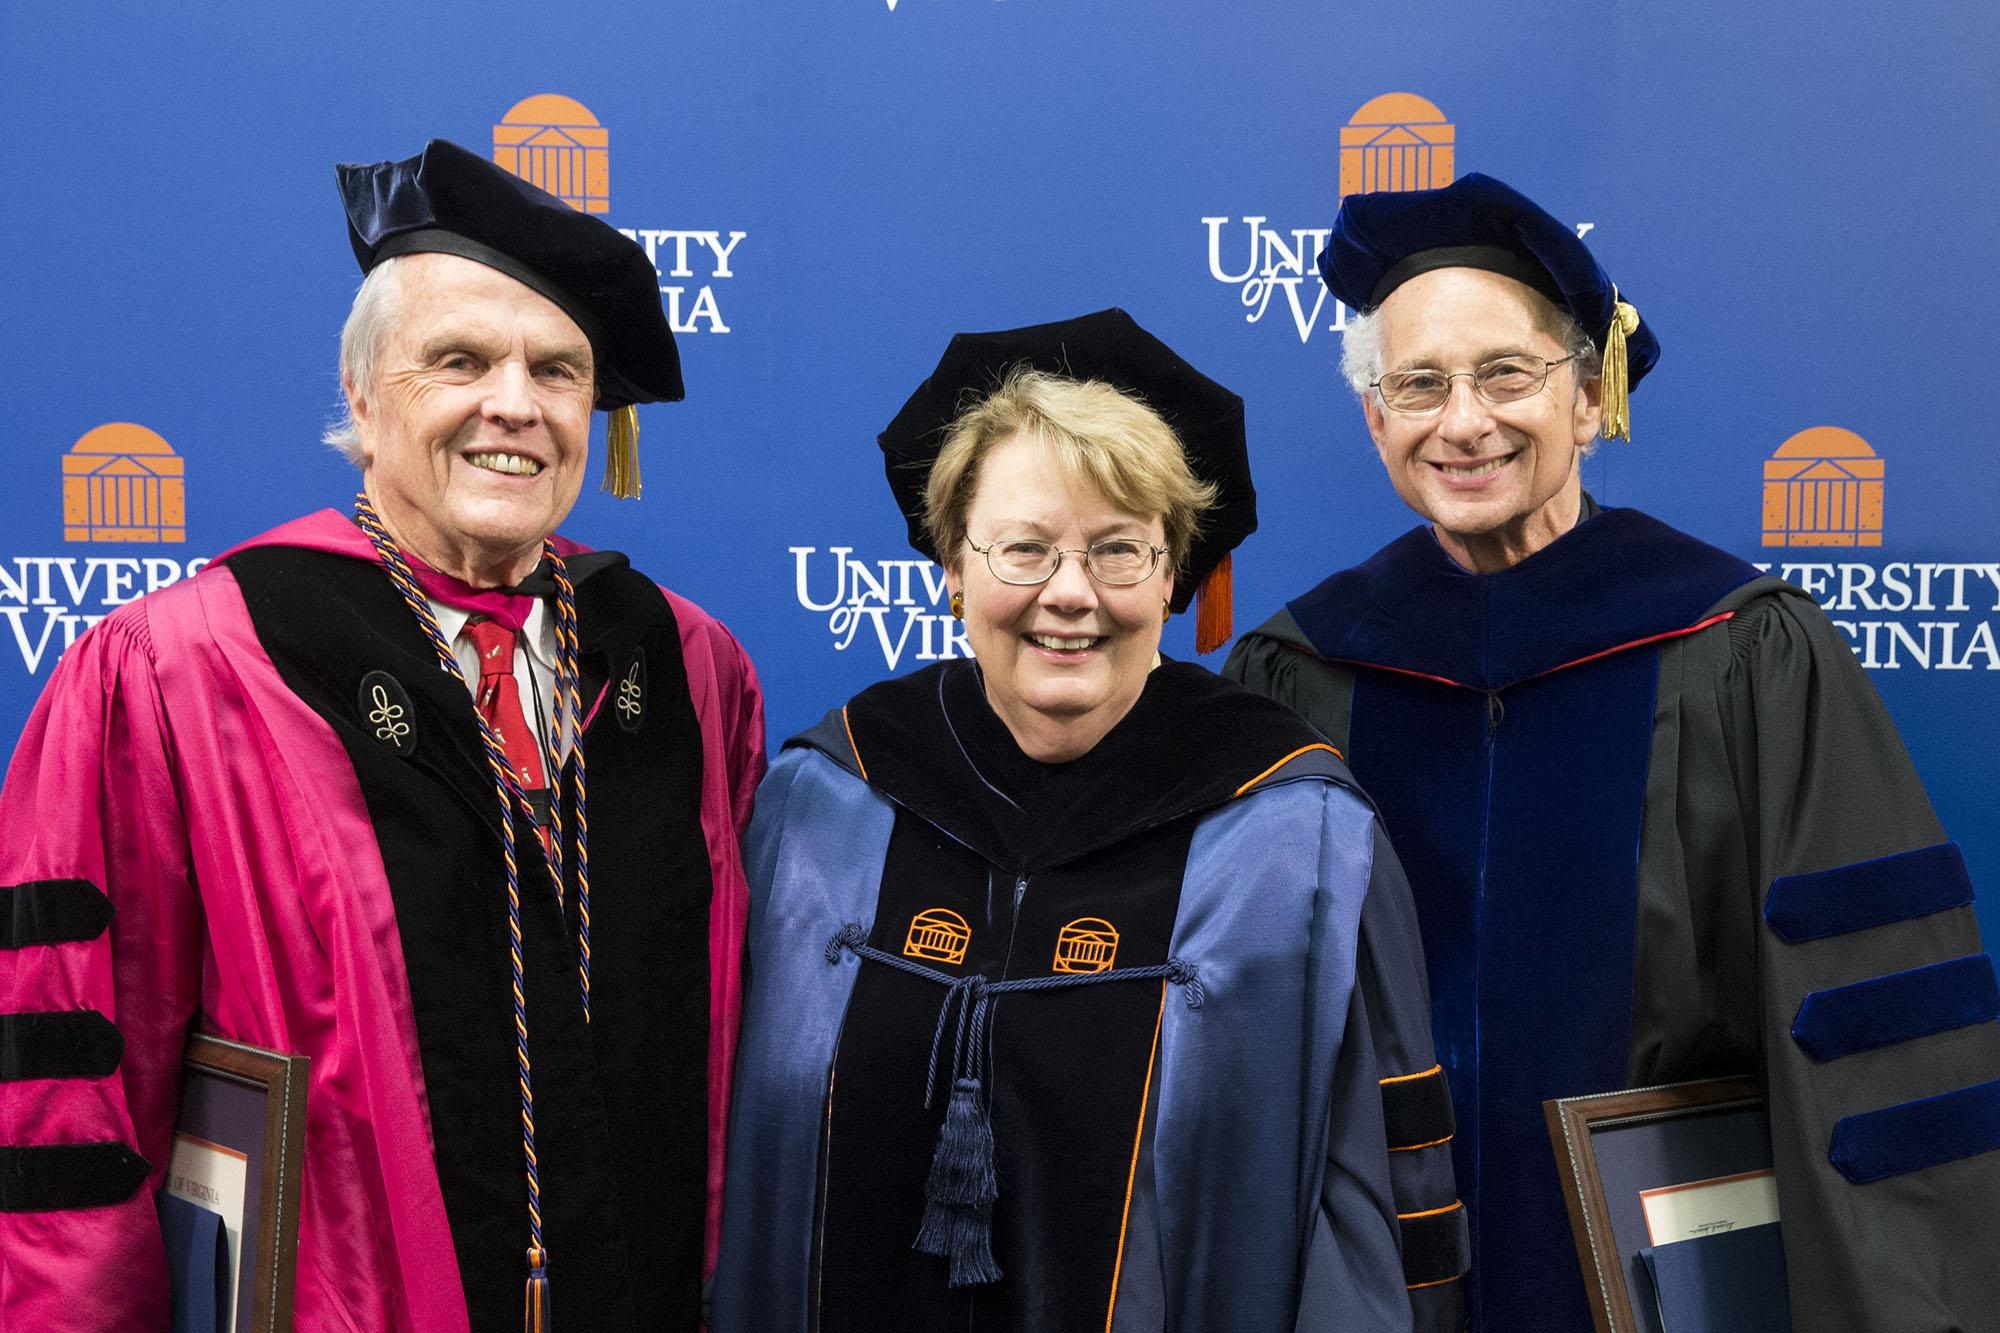 Fall Convocation Celebrates University's Top Faculty ...